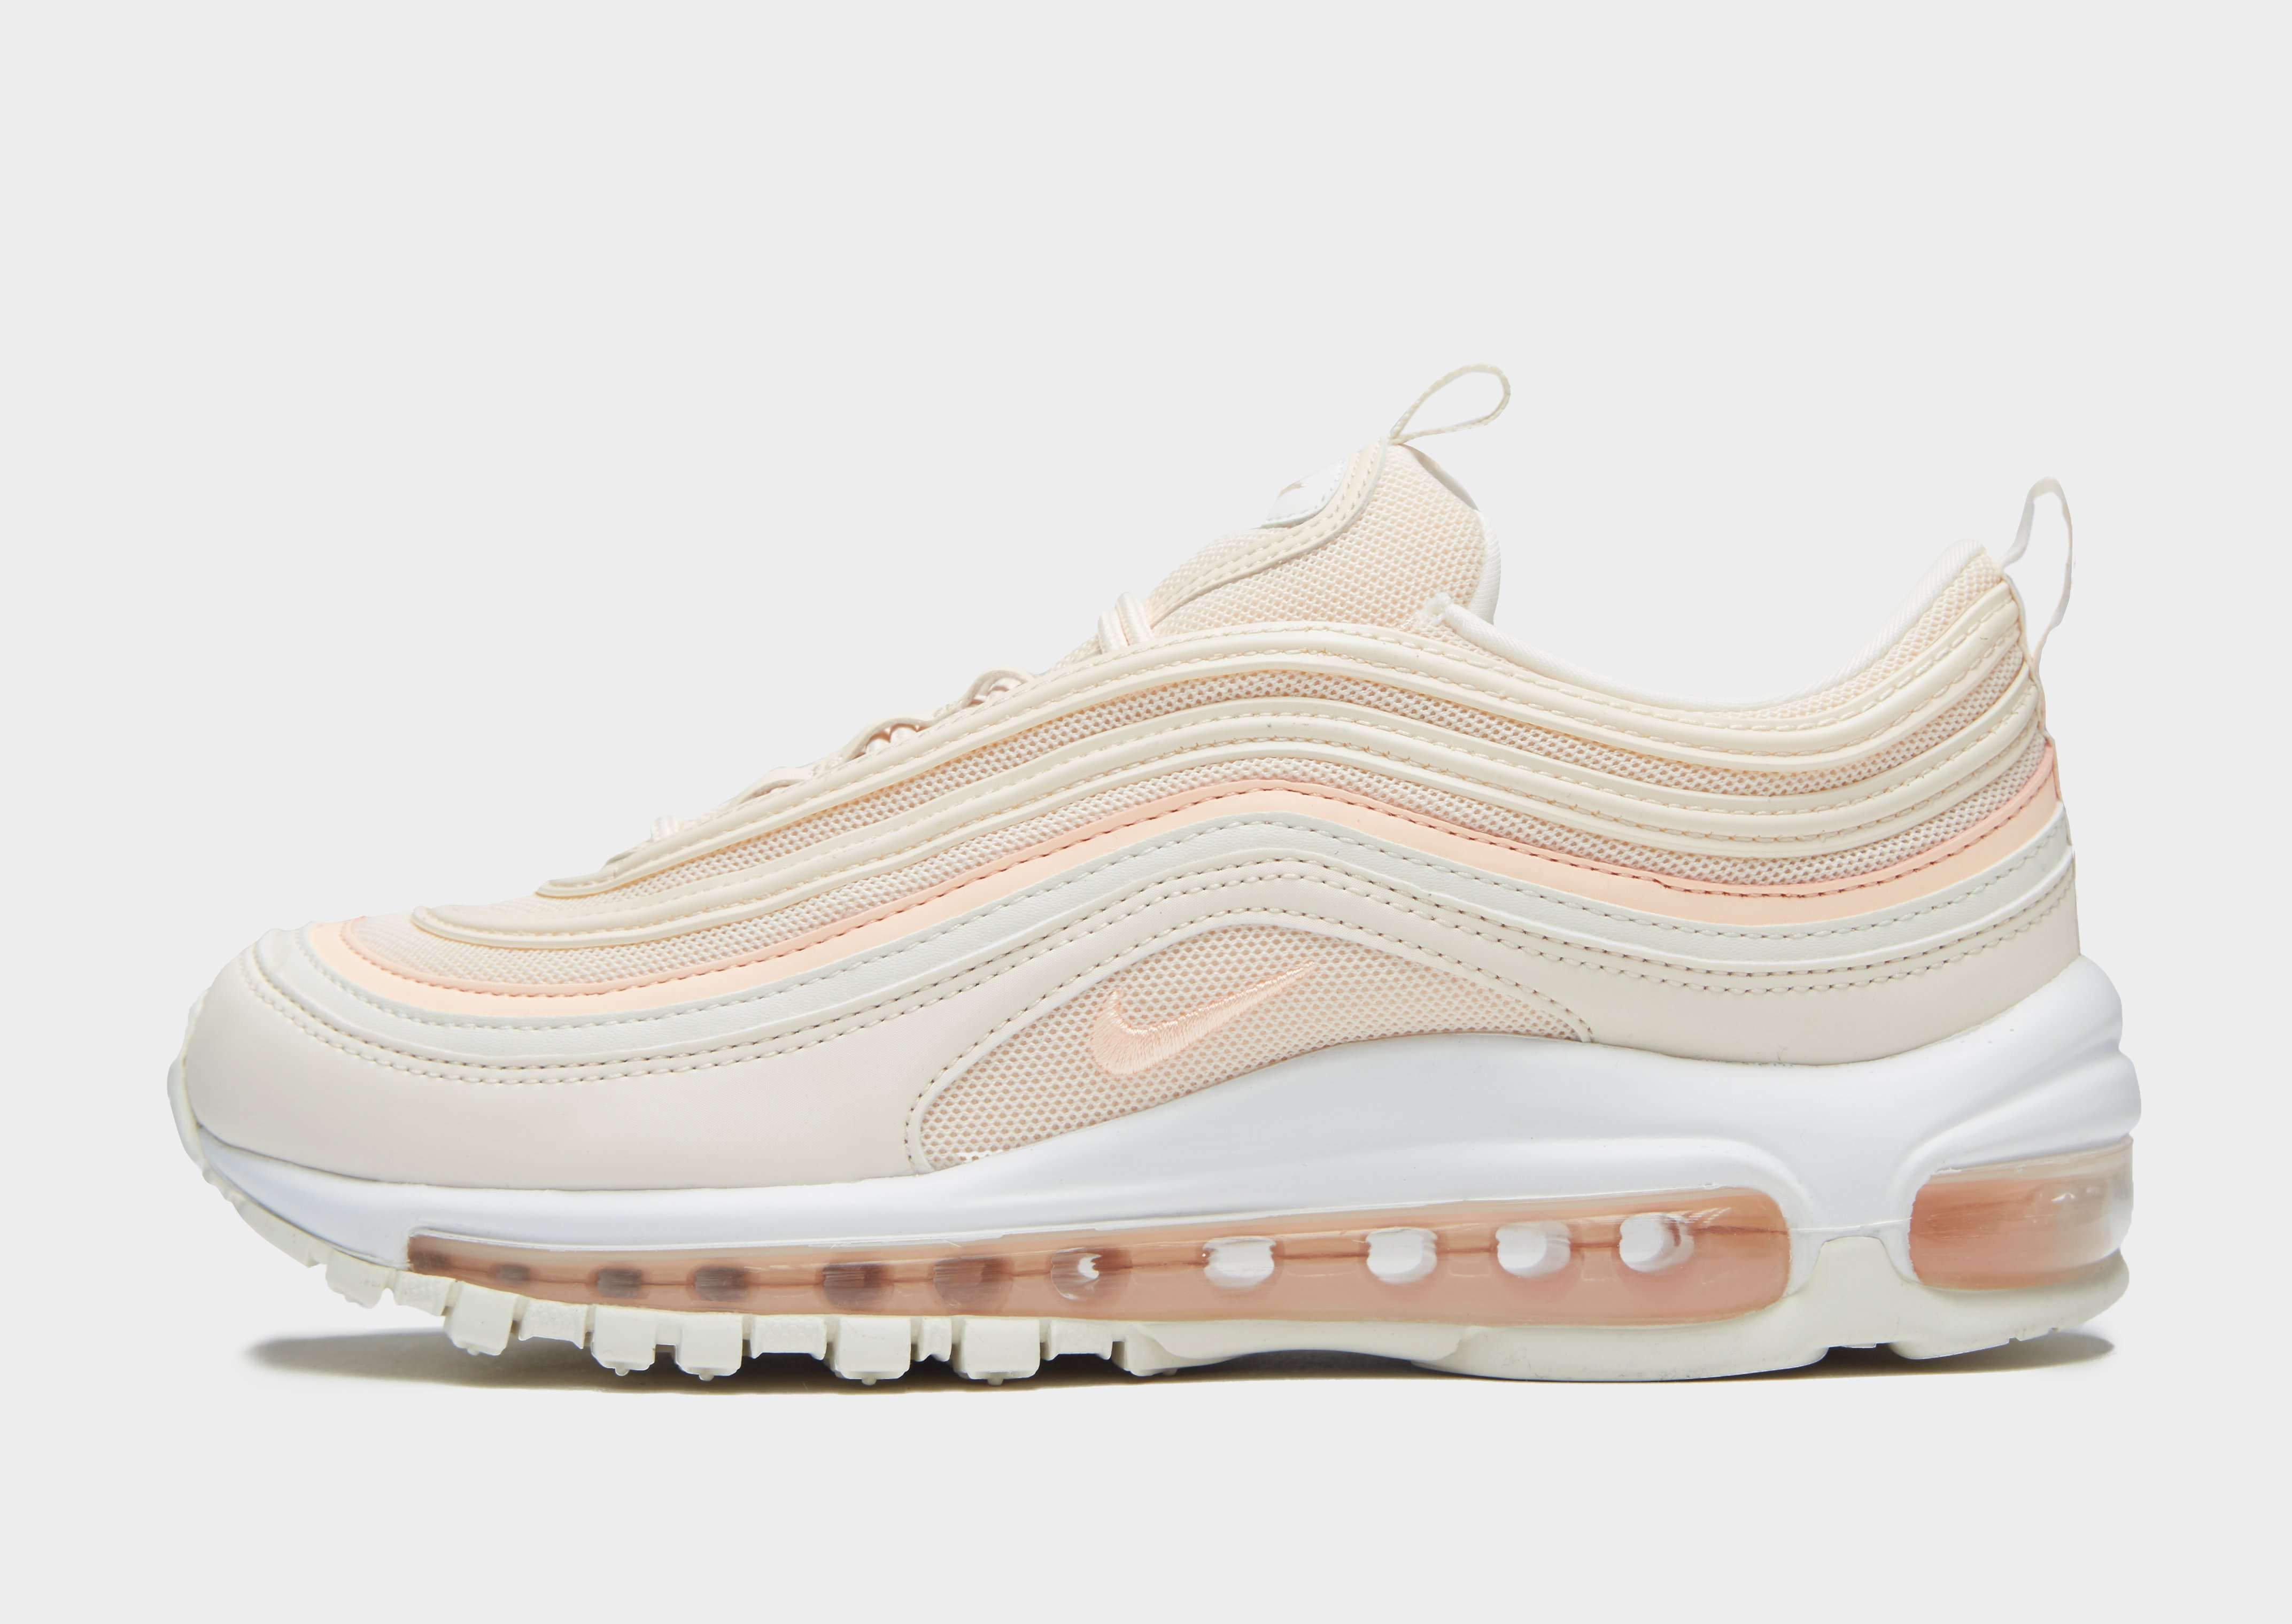 The Best On Foot Shots of the Off White x Nike Air Max 97